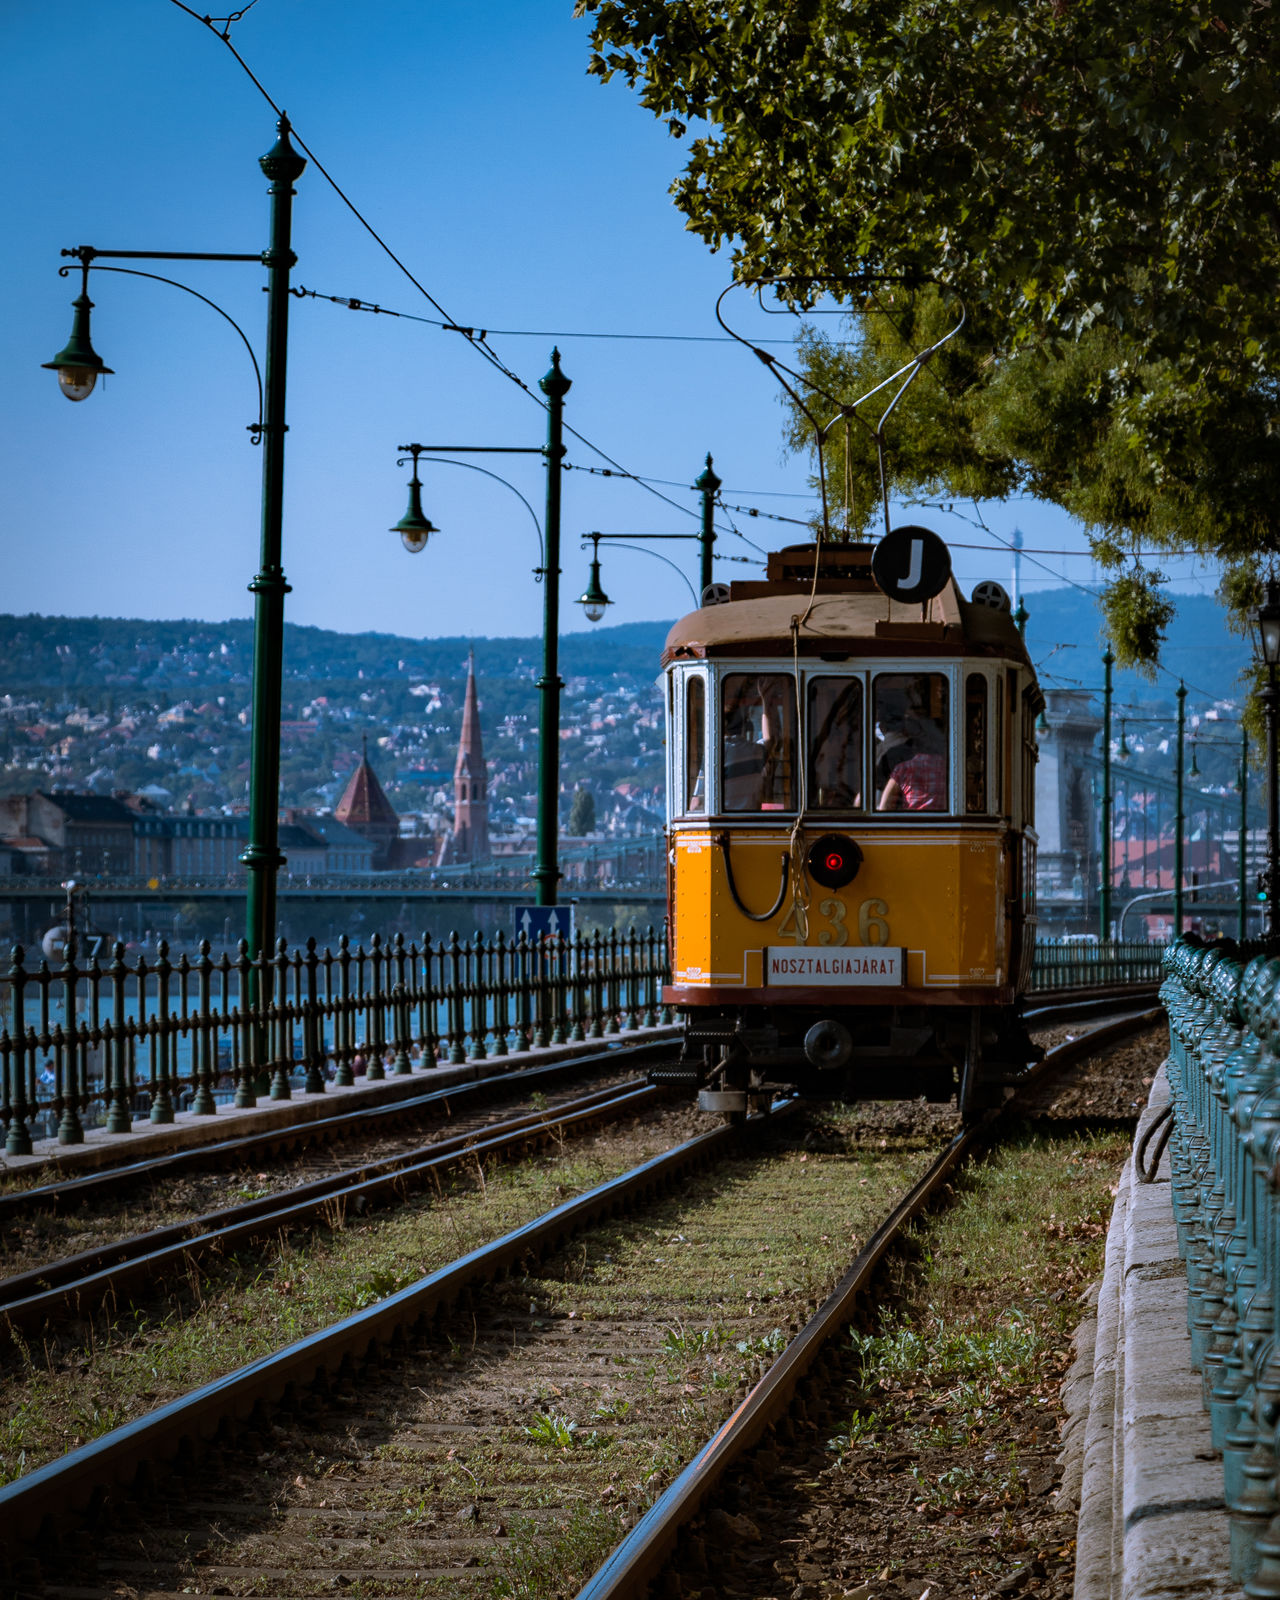 A nostalgia tram running along the Danube River. Budapest City City Life Composition Hungary Nostalgia Perspective Public Transport Public Transportation Tram Transportation